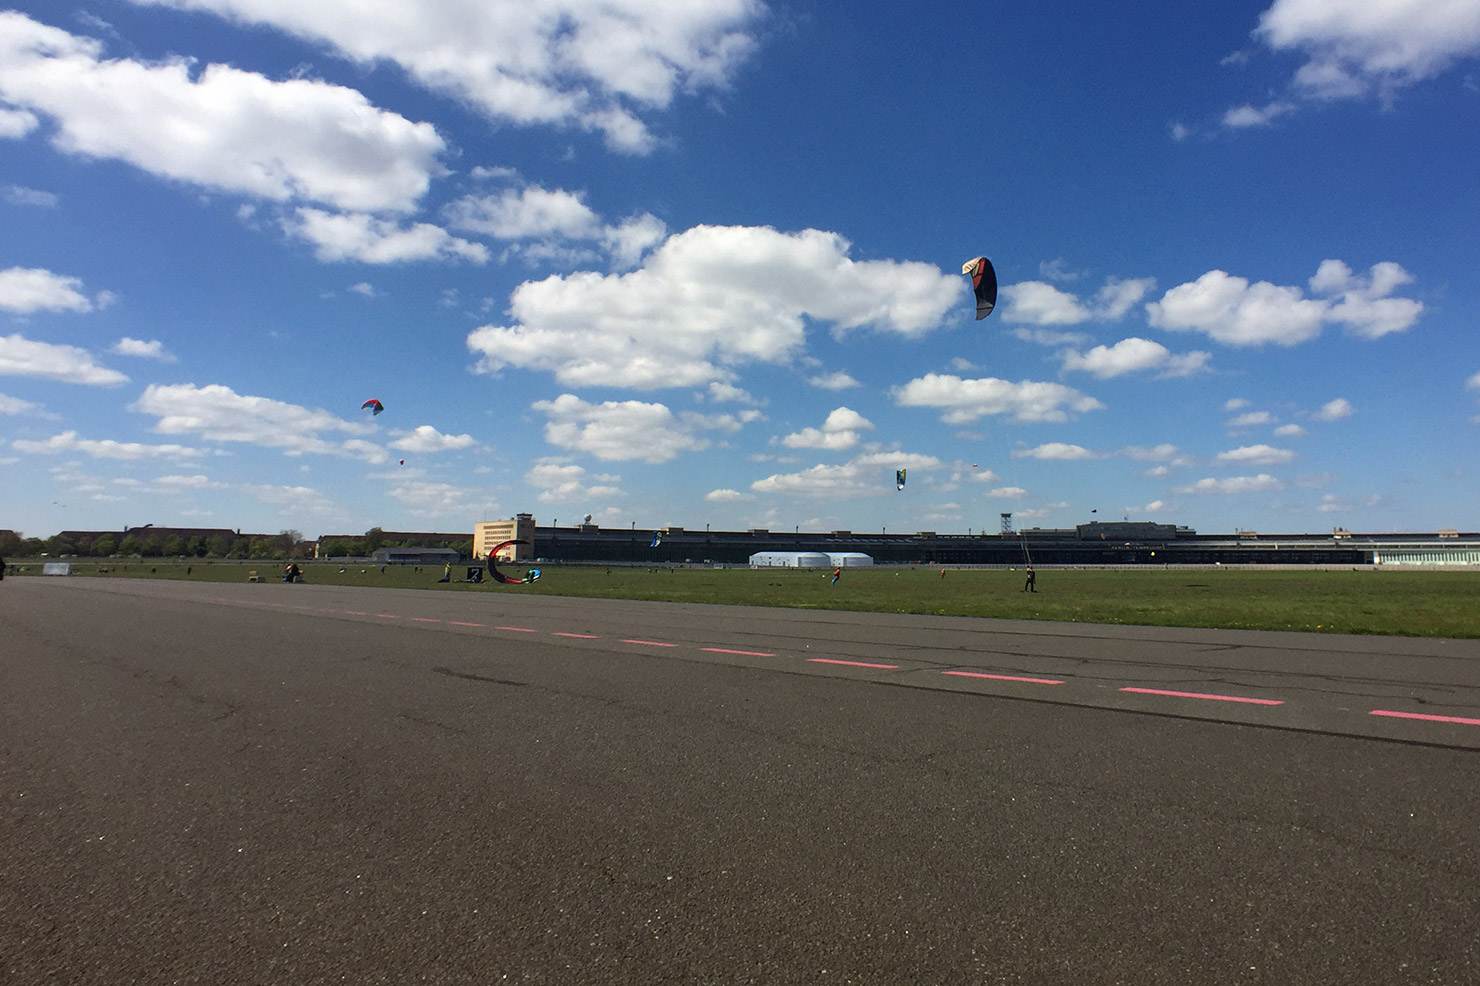 Tempelhofer Feld: parade-ground, airport, spandex leisure resort